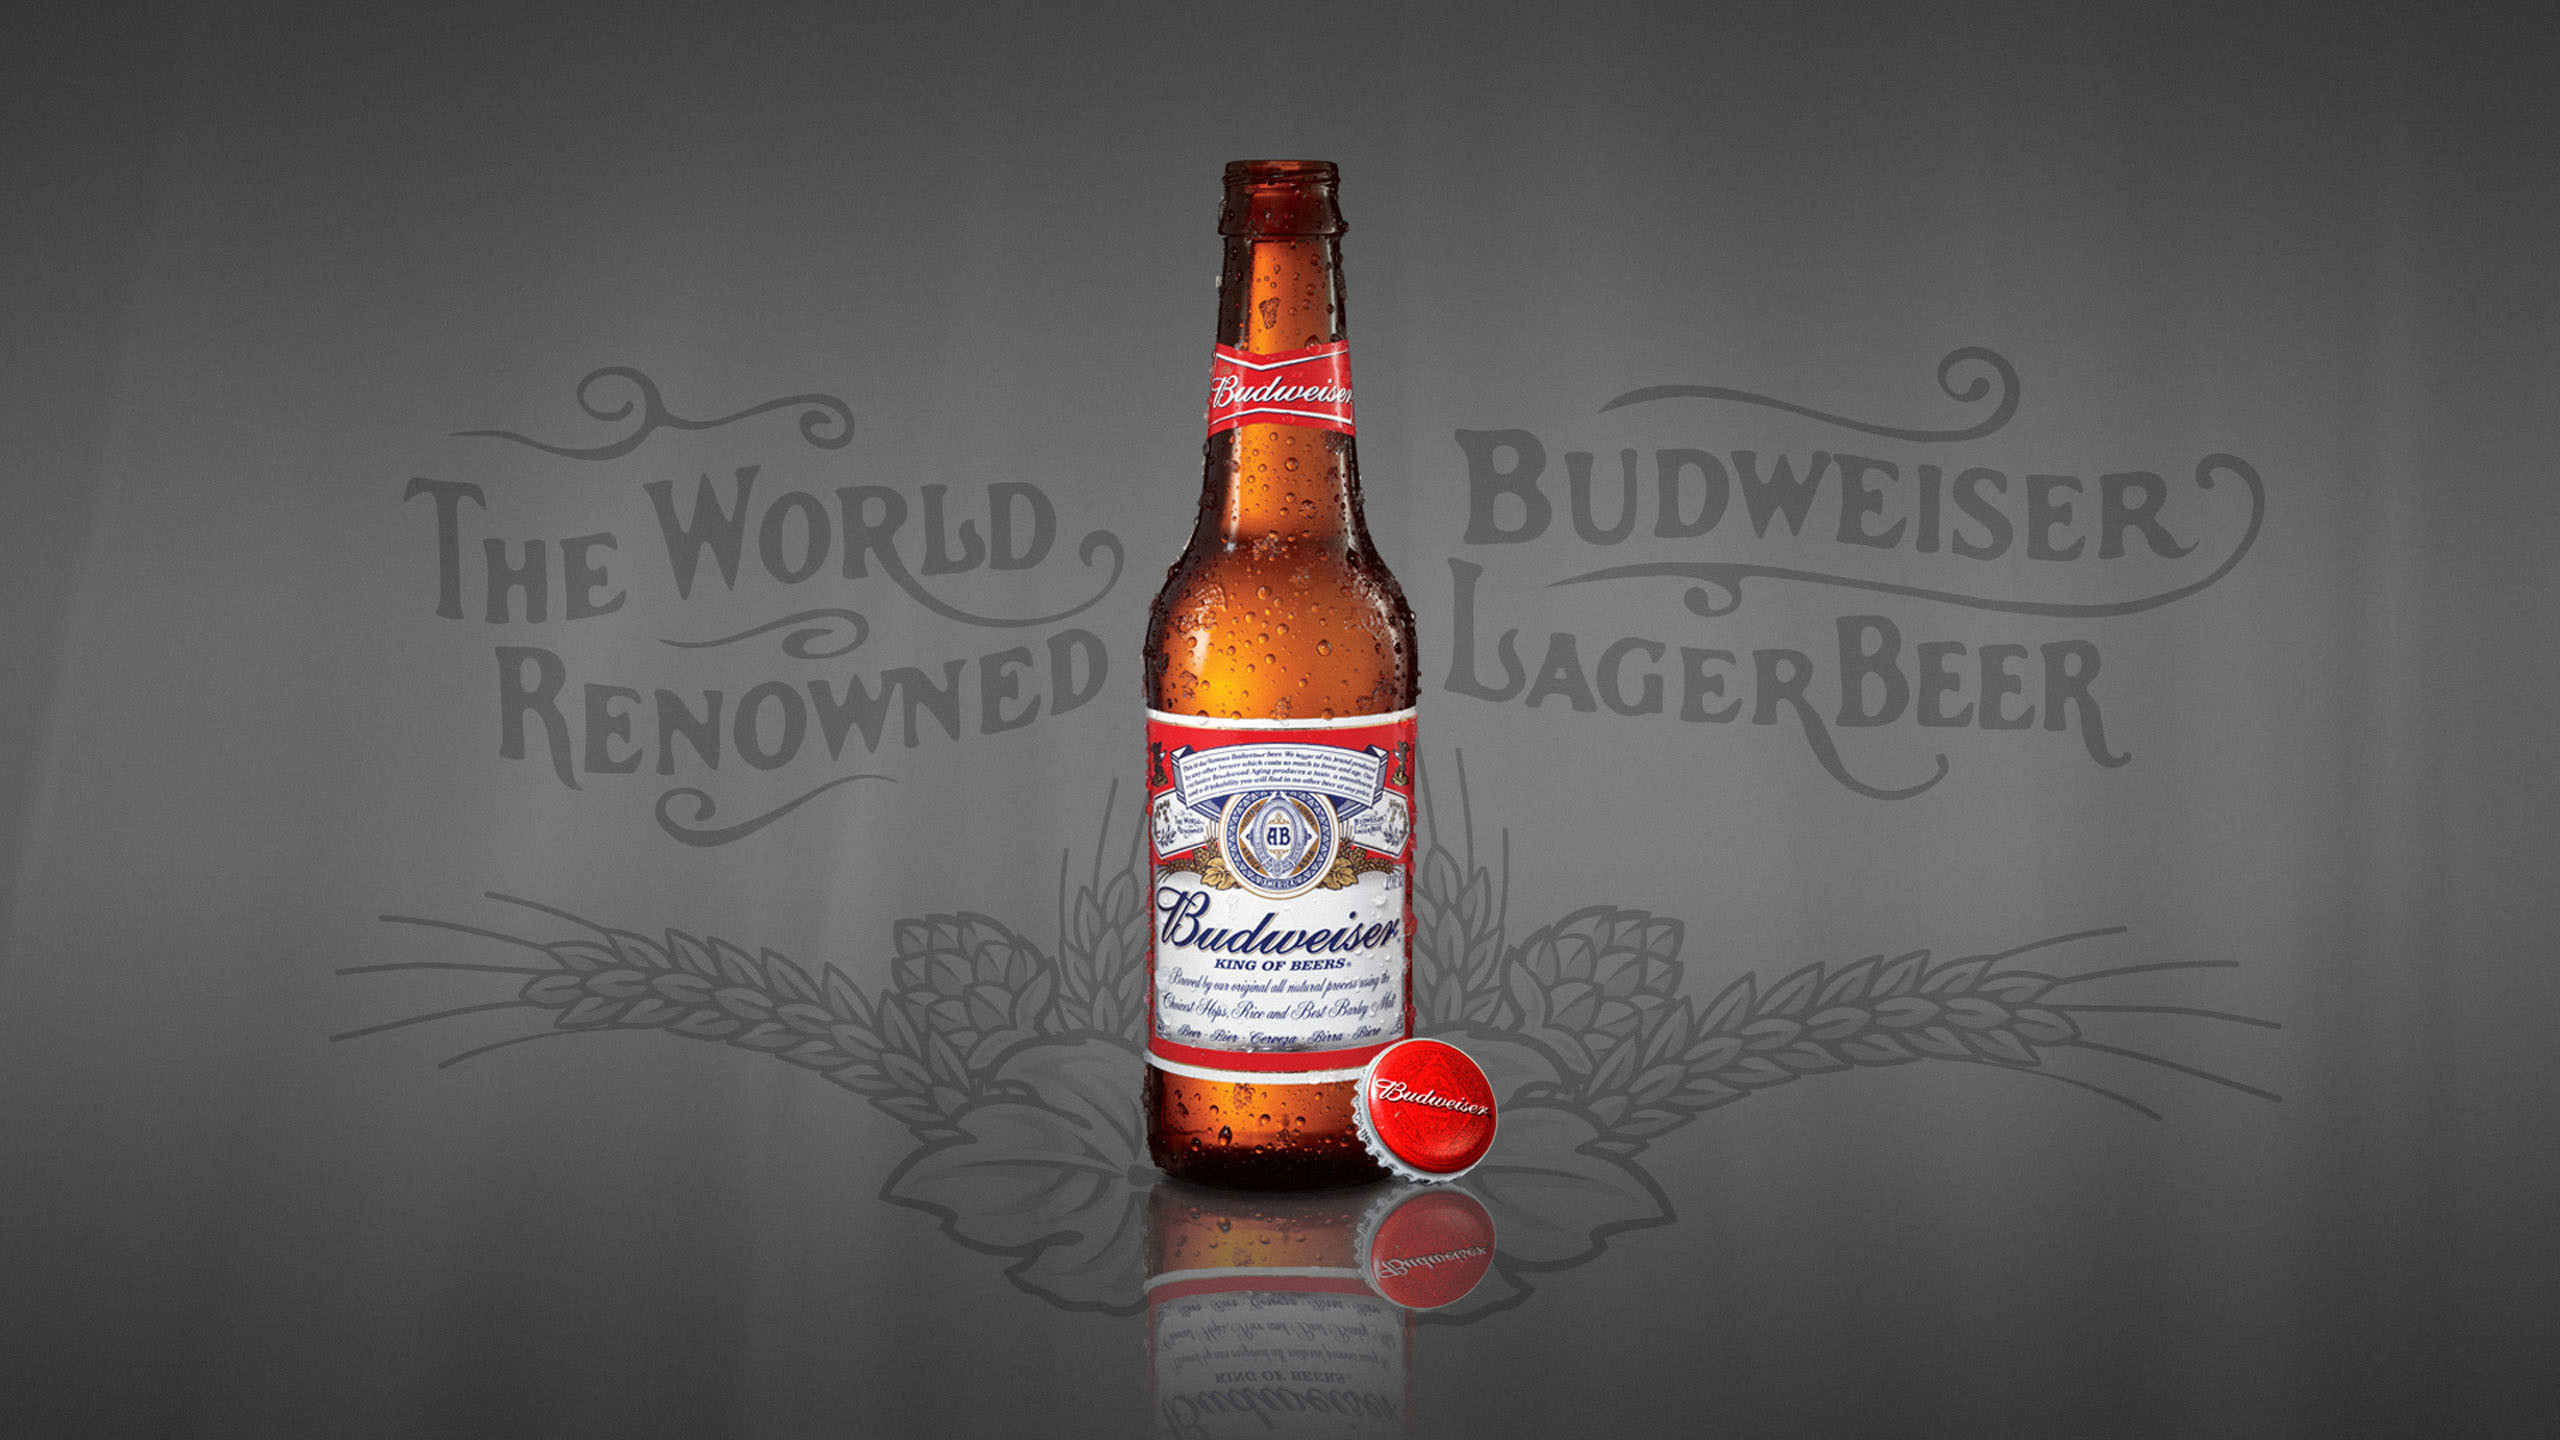 Res: 2560x1440, Budweiser Lager Beer The World 1920x1080 414 Hd